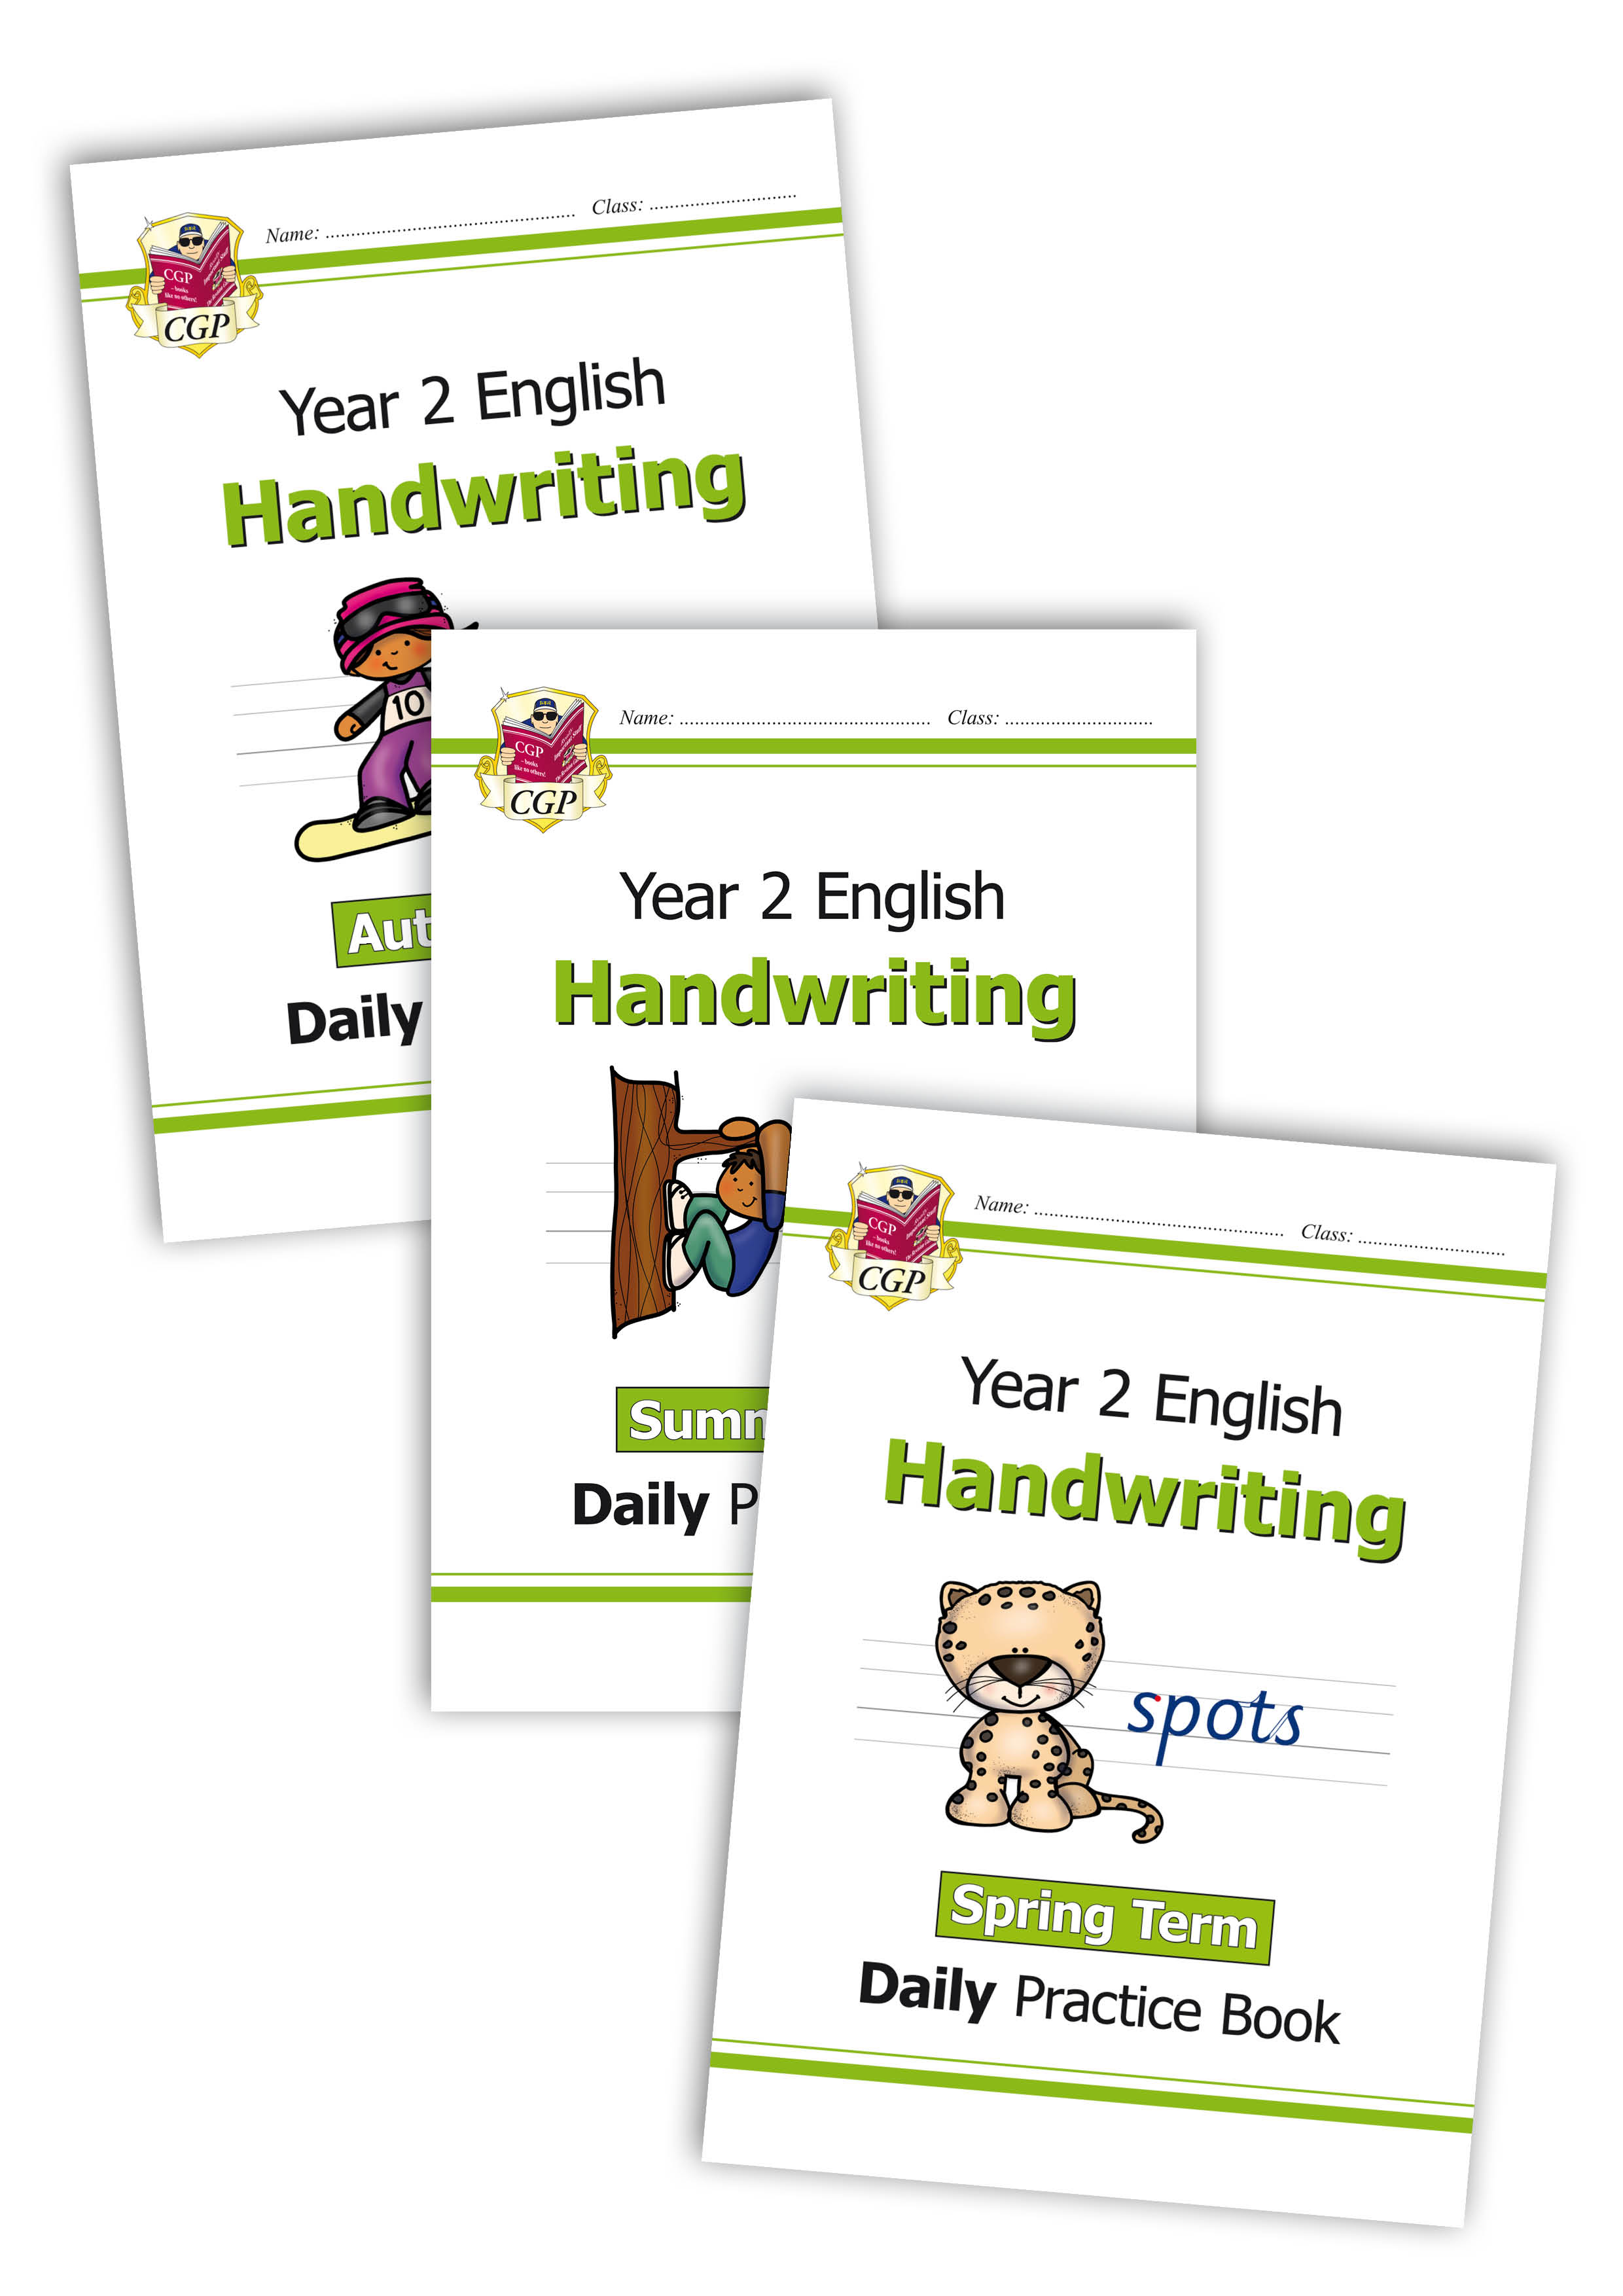 E2HWB11 - New KS1 Handwriting Daily Practice Book Bundle: Year 2 - Autumn Term, Spring Term & Summer